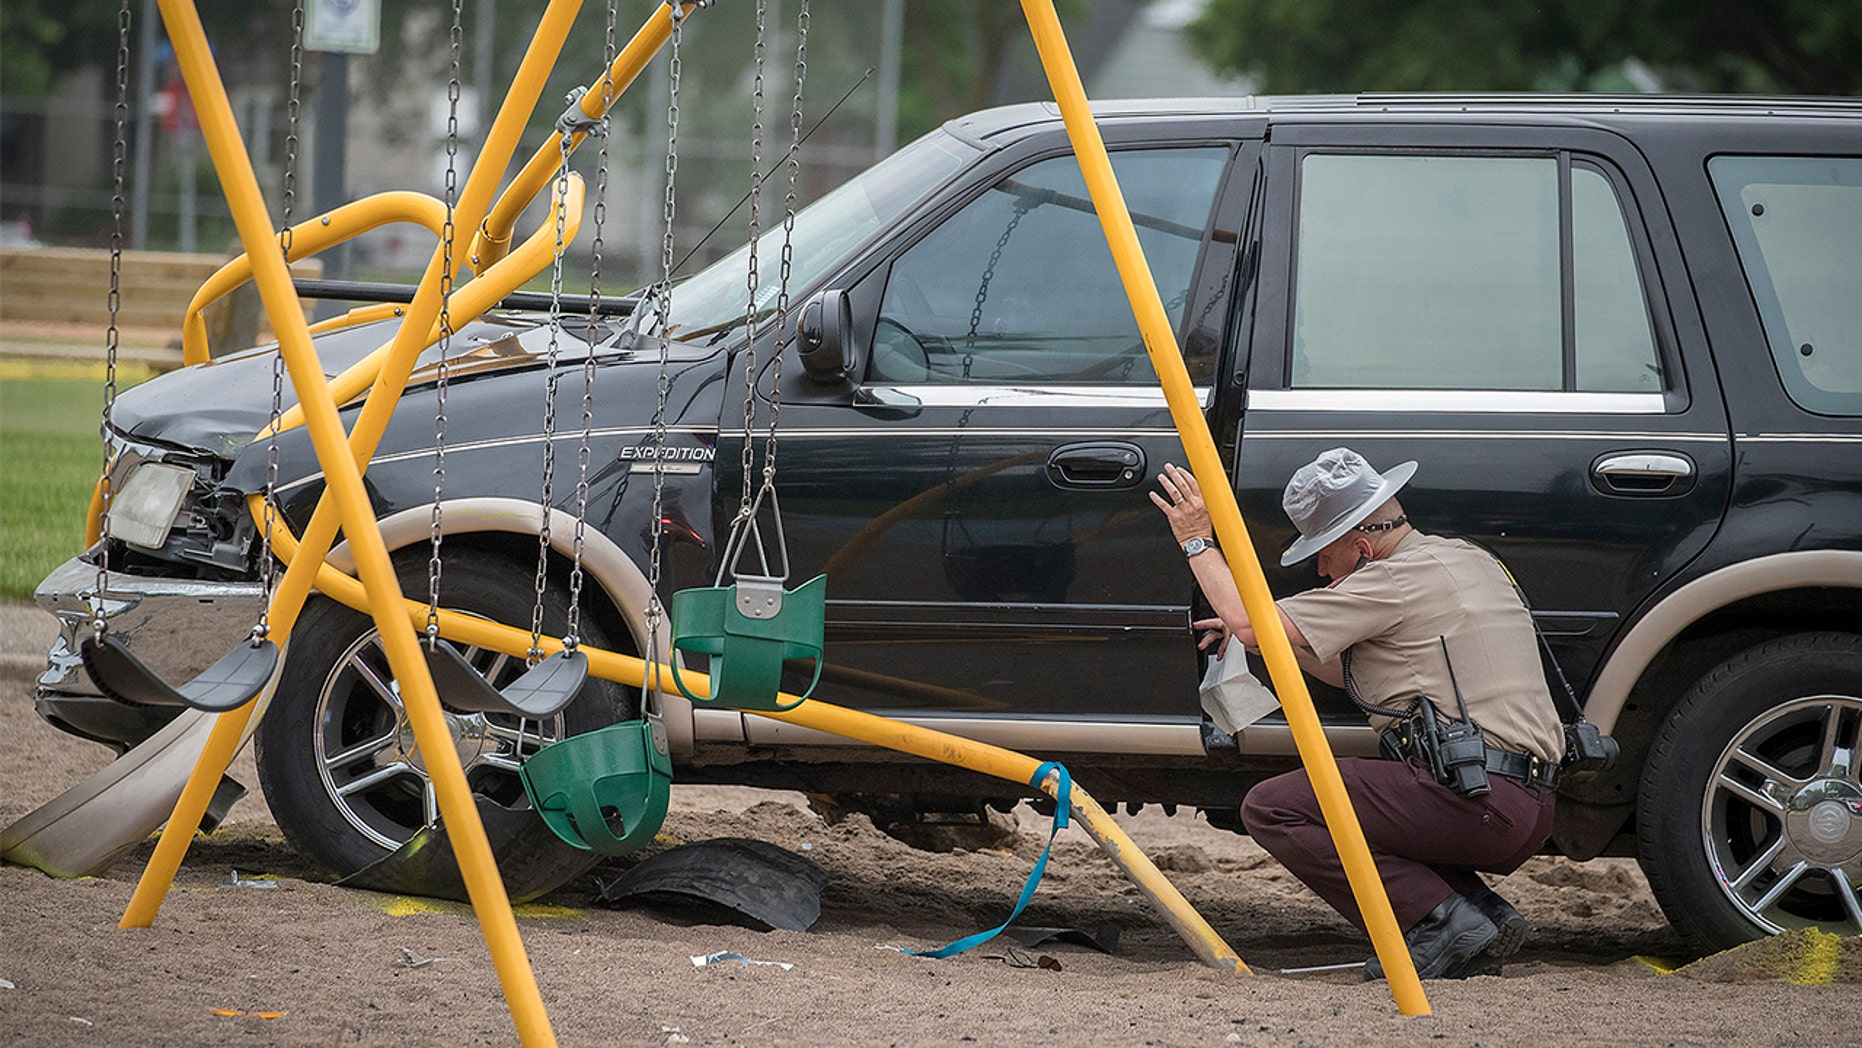 Minnesota State Patrol investigates the scene where a motorist being pursued by the State Patrol veered into a Minneapolis playground on Monday.